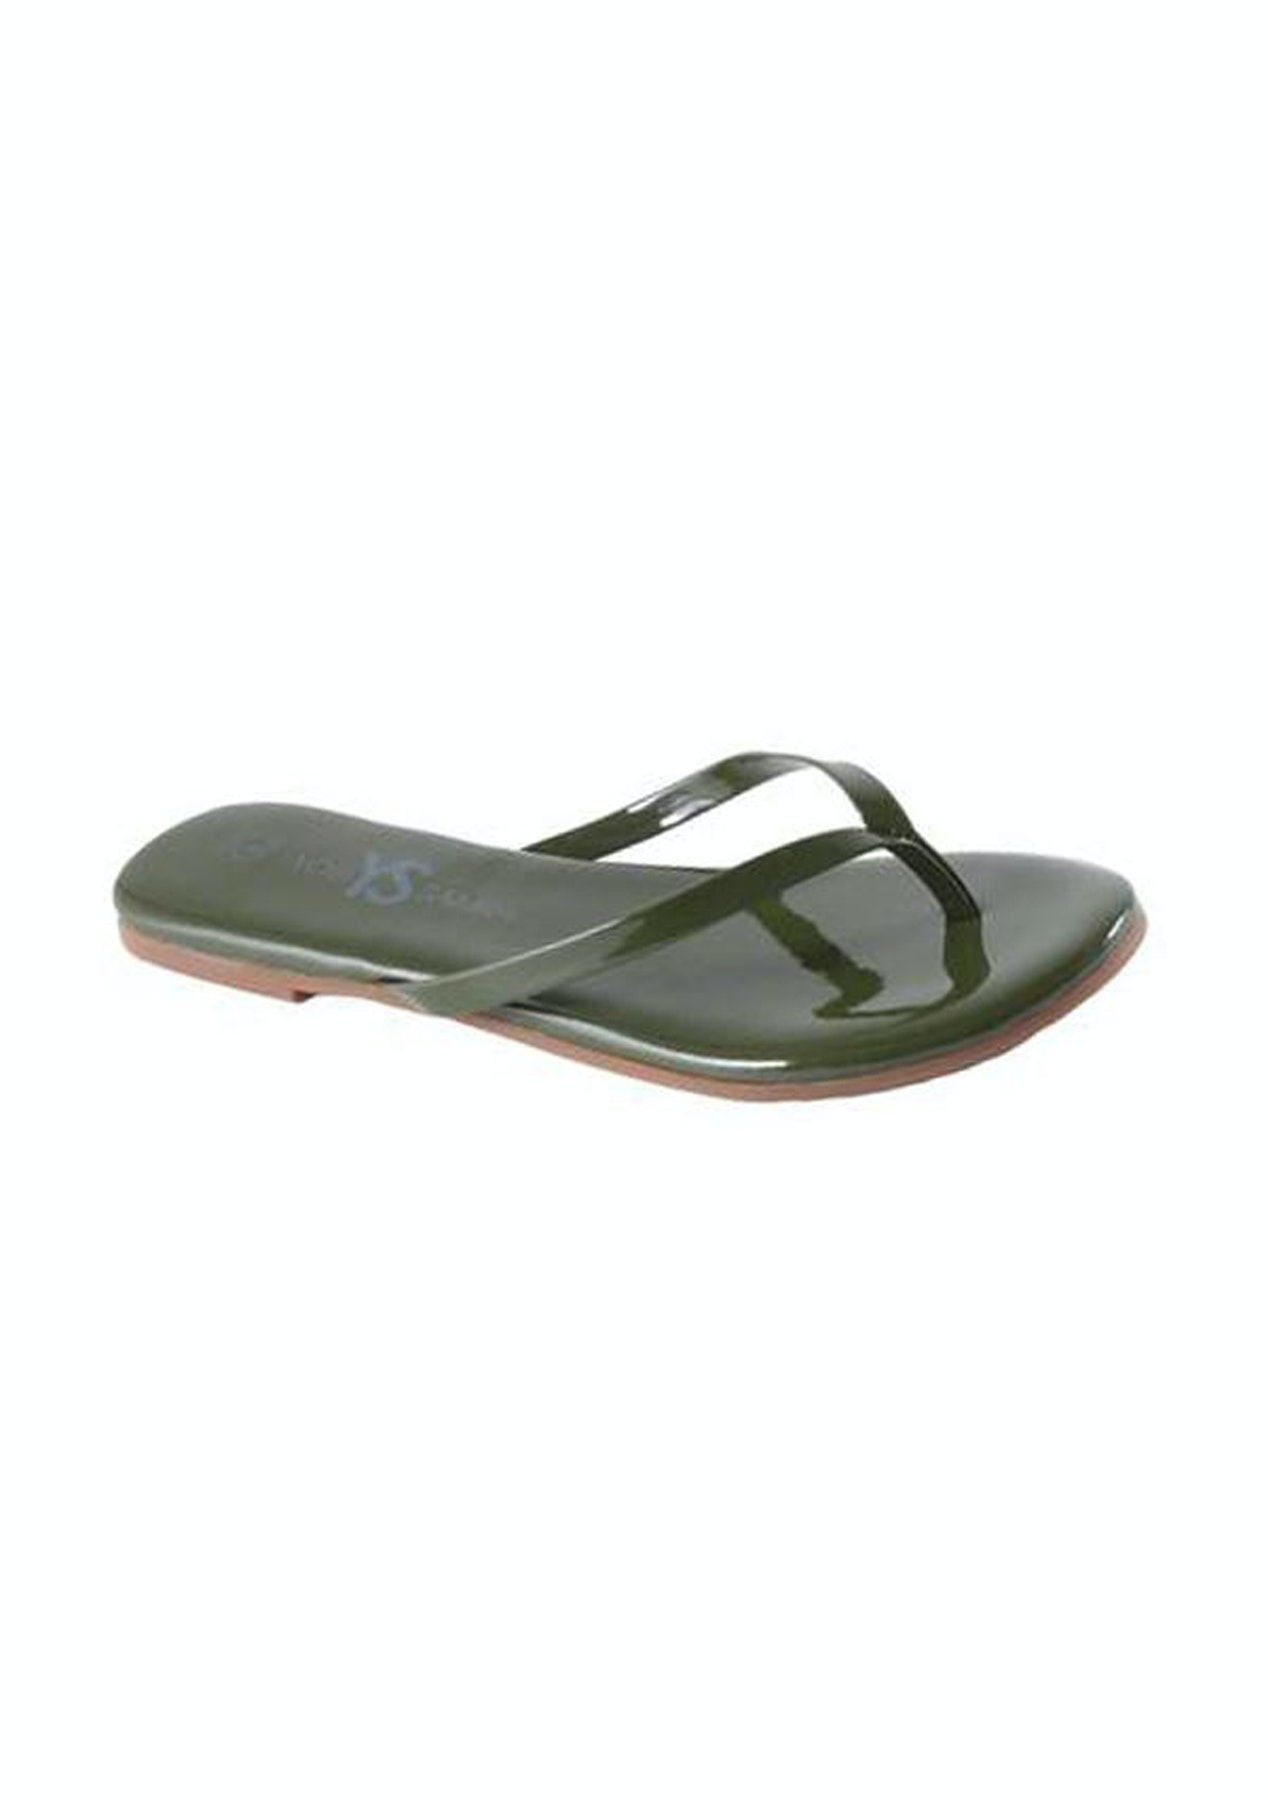 0a762ebc73e40 Yosi Samra - Roee Patent leather -Olive green